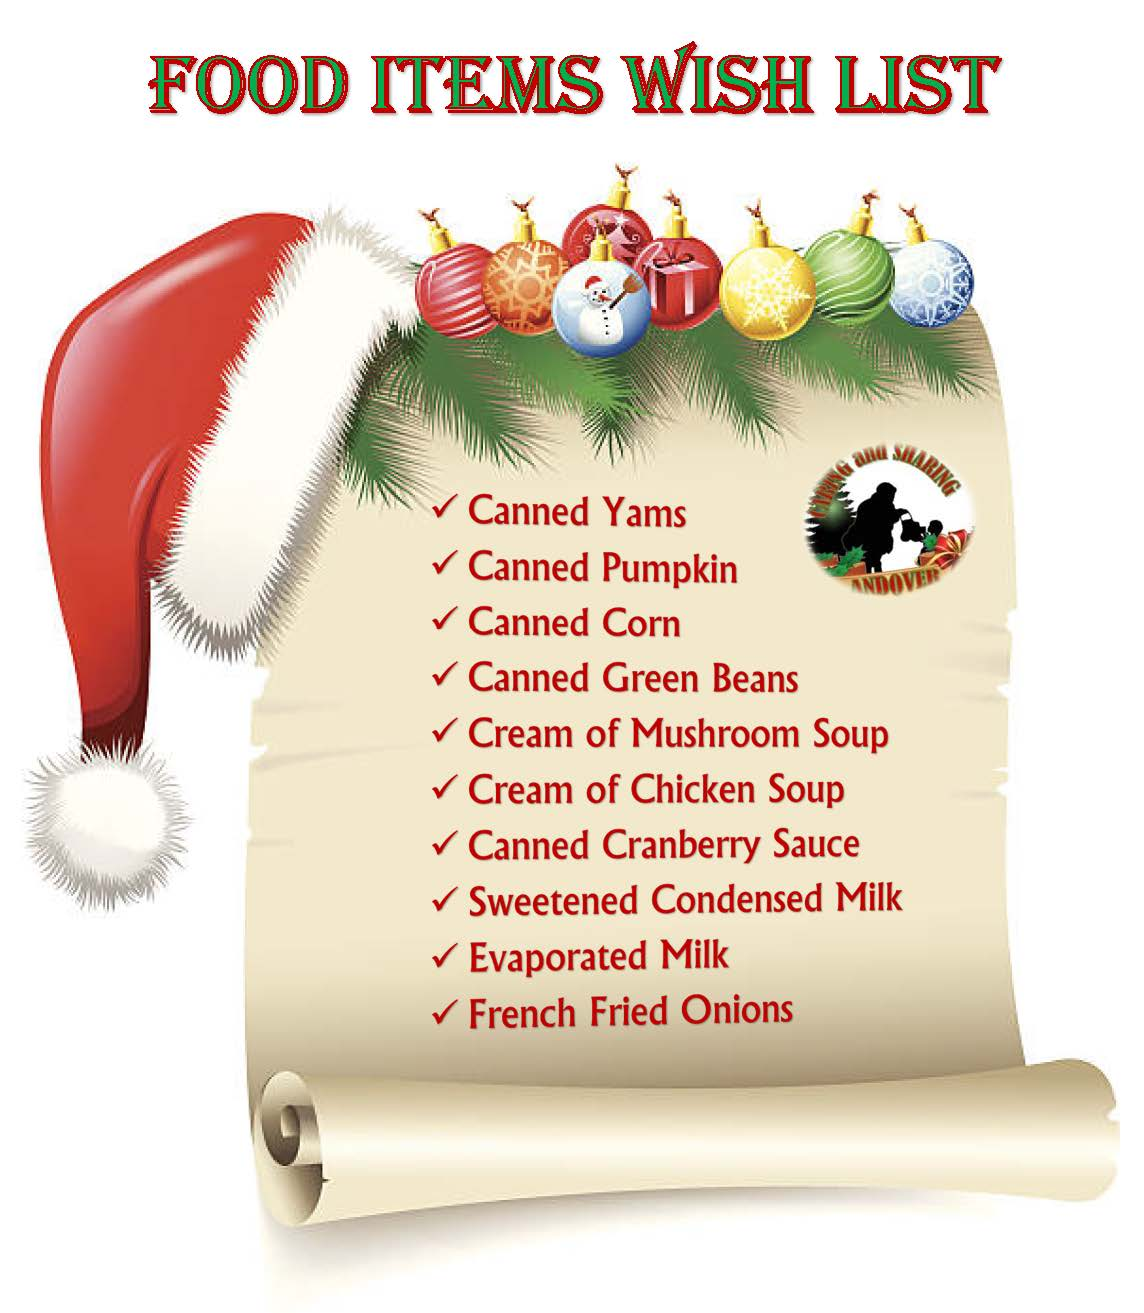 2019 Food Wish List - canned yams, pumpkin, corn, green beans, cream of mushroom soup, chicken soup,